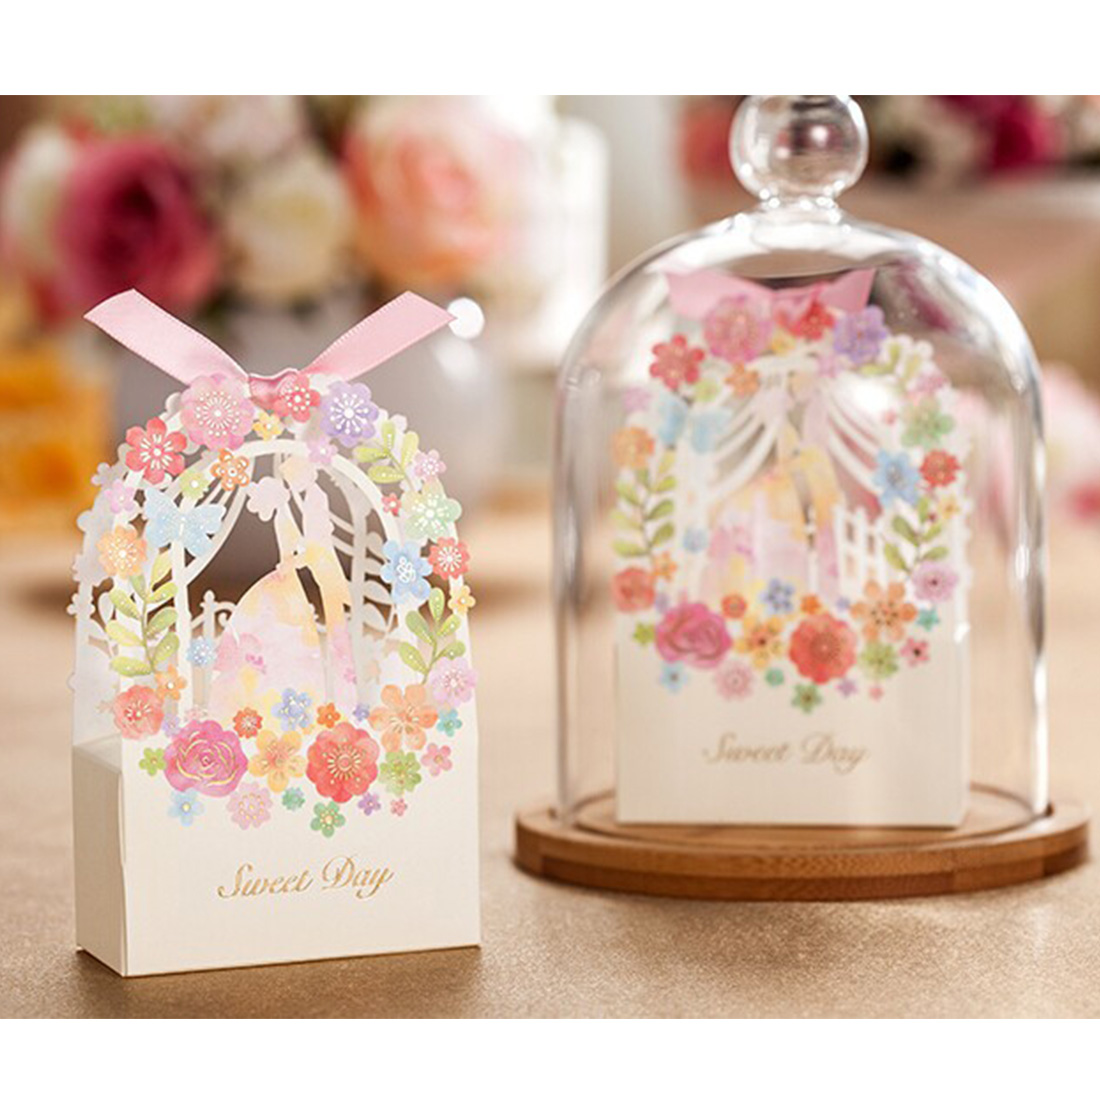 hot 50pcs sweet wedding favors gifts box flower laser elegant luxury decoration party event supplies paper